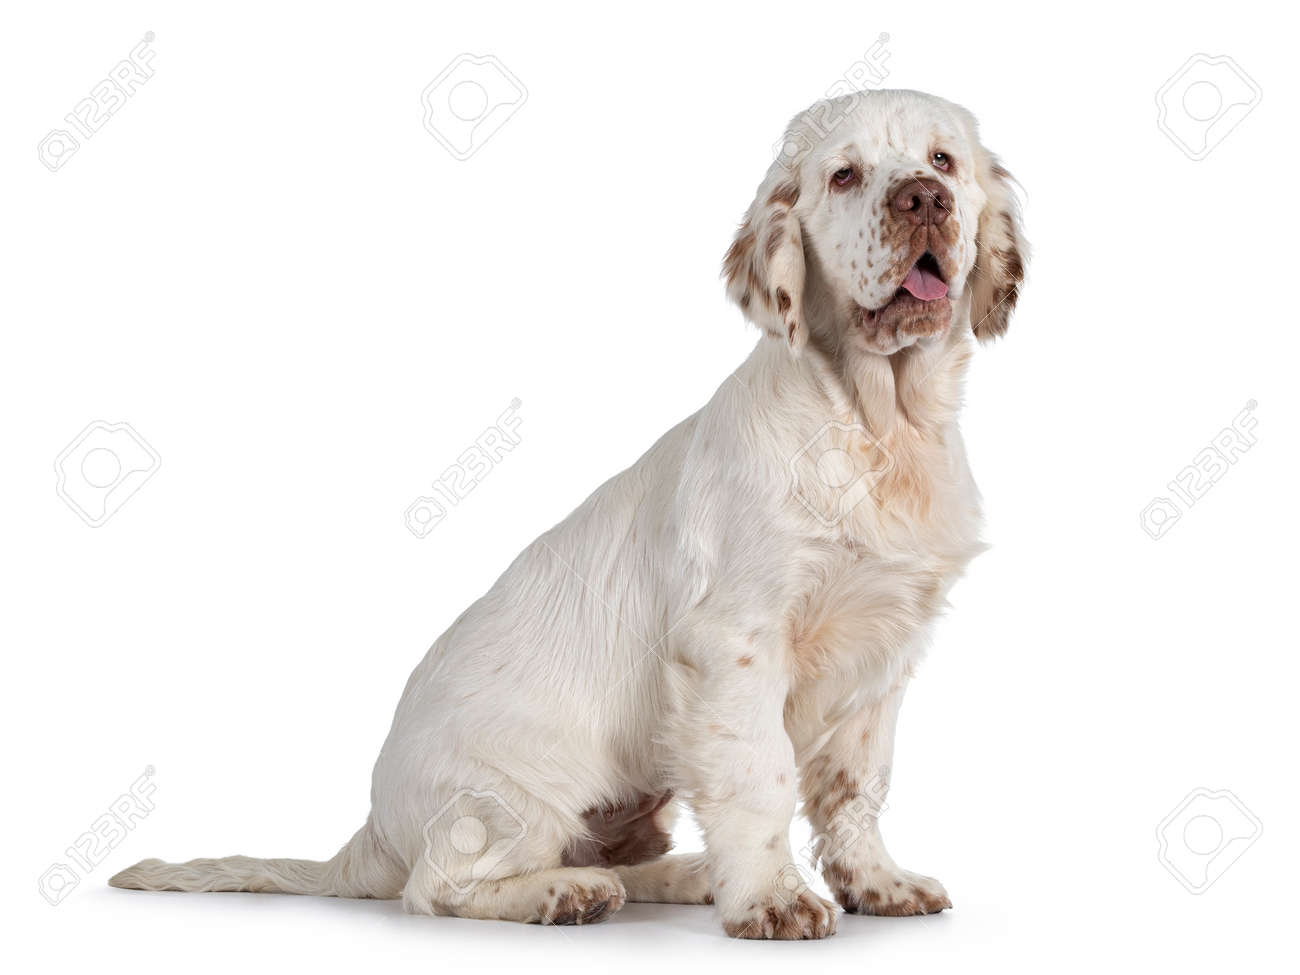 Cute Clumber Spaniel dog puppy, sitting up side ways. Looking away from camera with the typical droopy eyes. Tingue out. Isolated on a white background. - 173357251